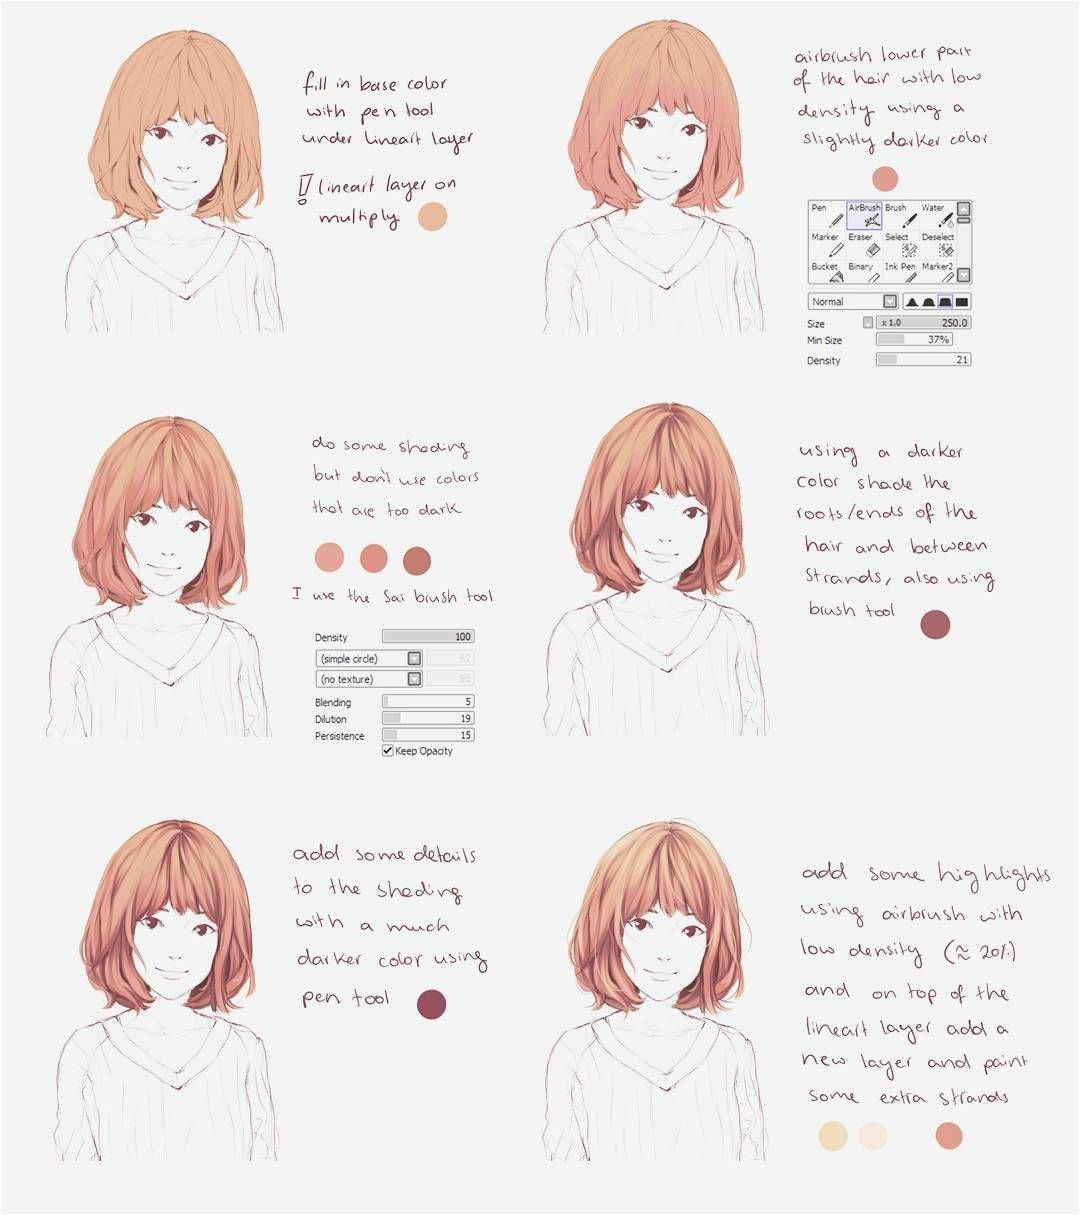 Anime Hairstyle Maker This is for Paint tool Sai A Small Hair Coloring Tutorial I Hope